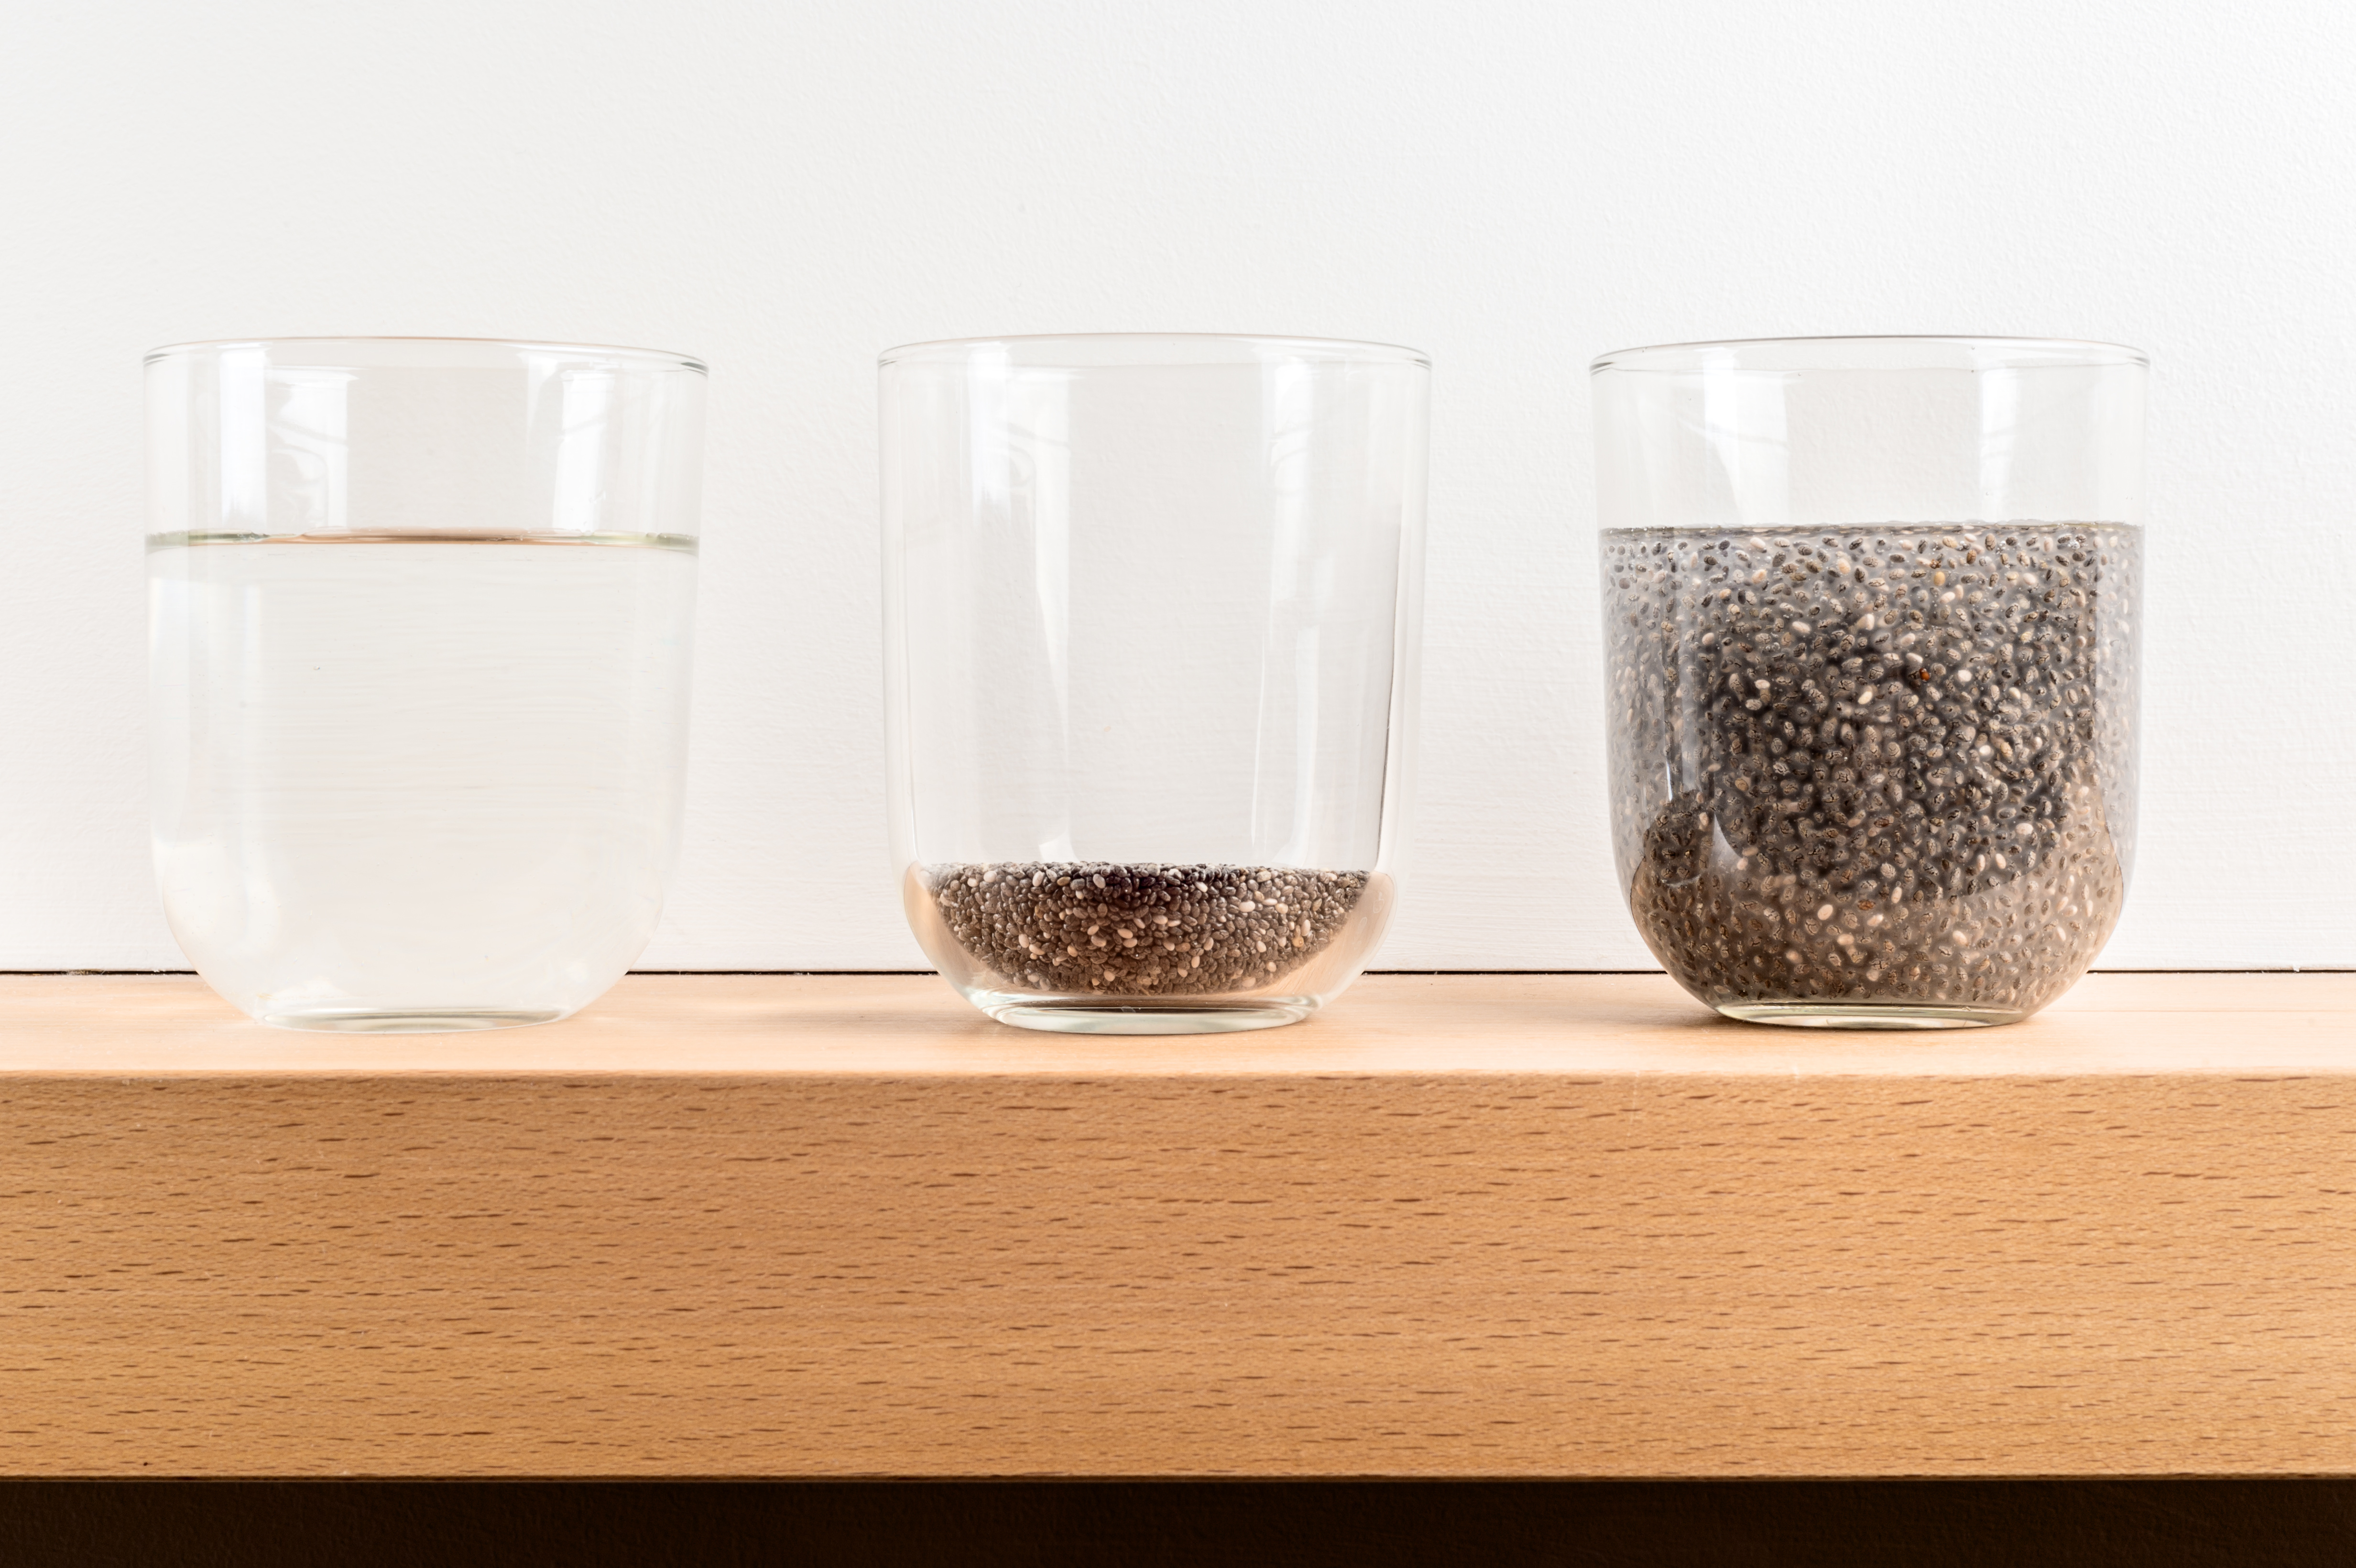 Showing example of hydrophilic with Chia seeds